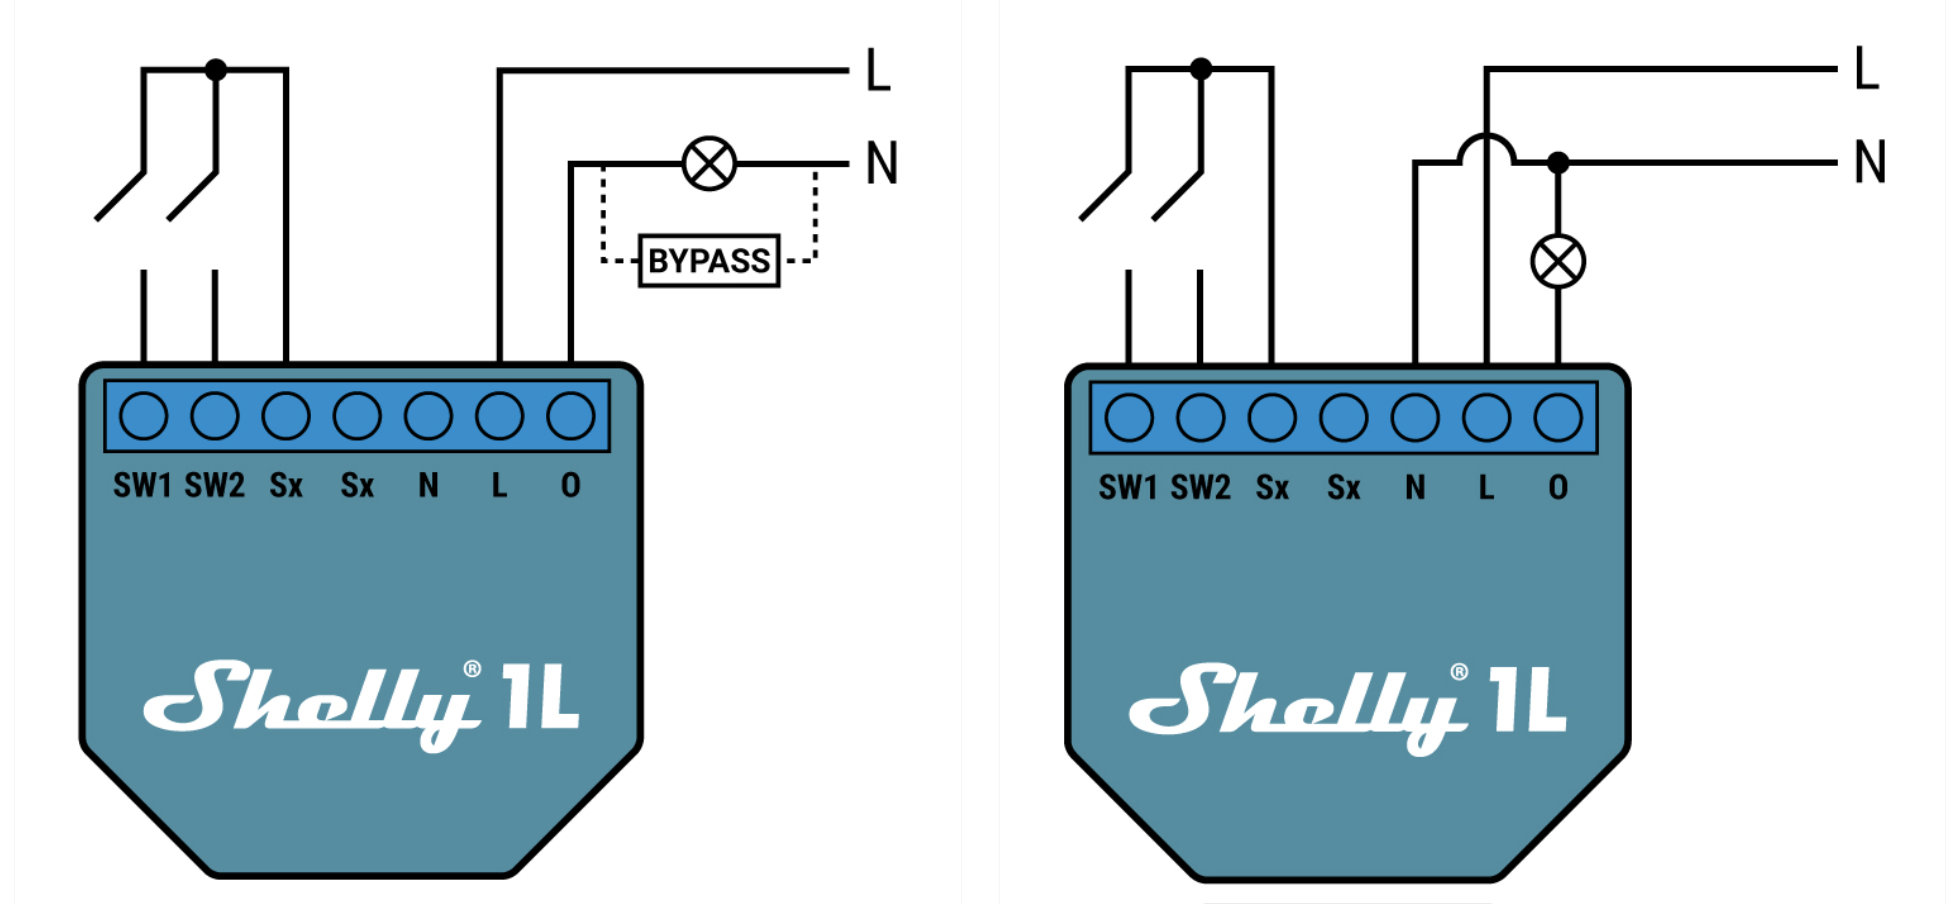 Shelly 1L ohne Bypass